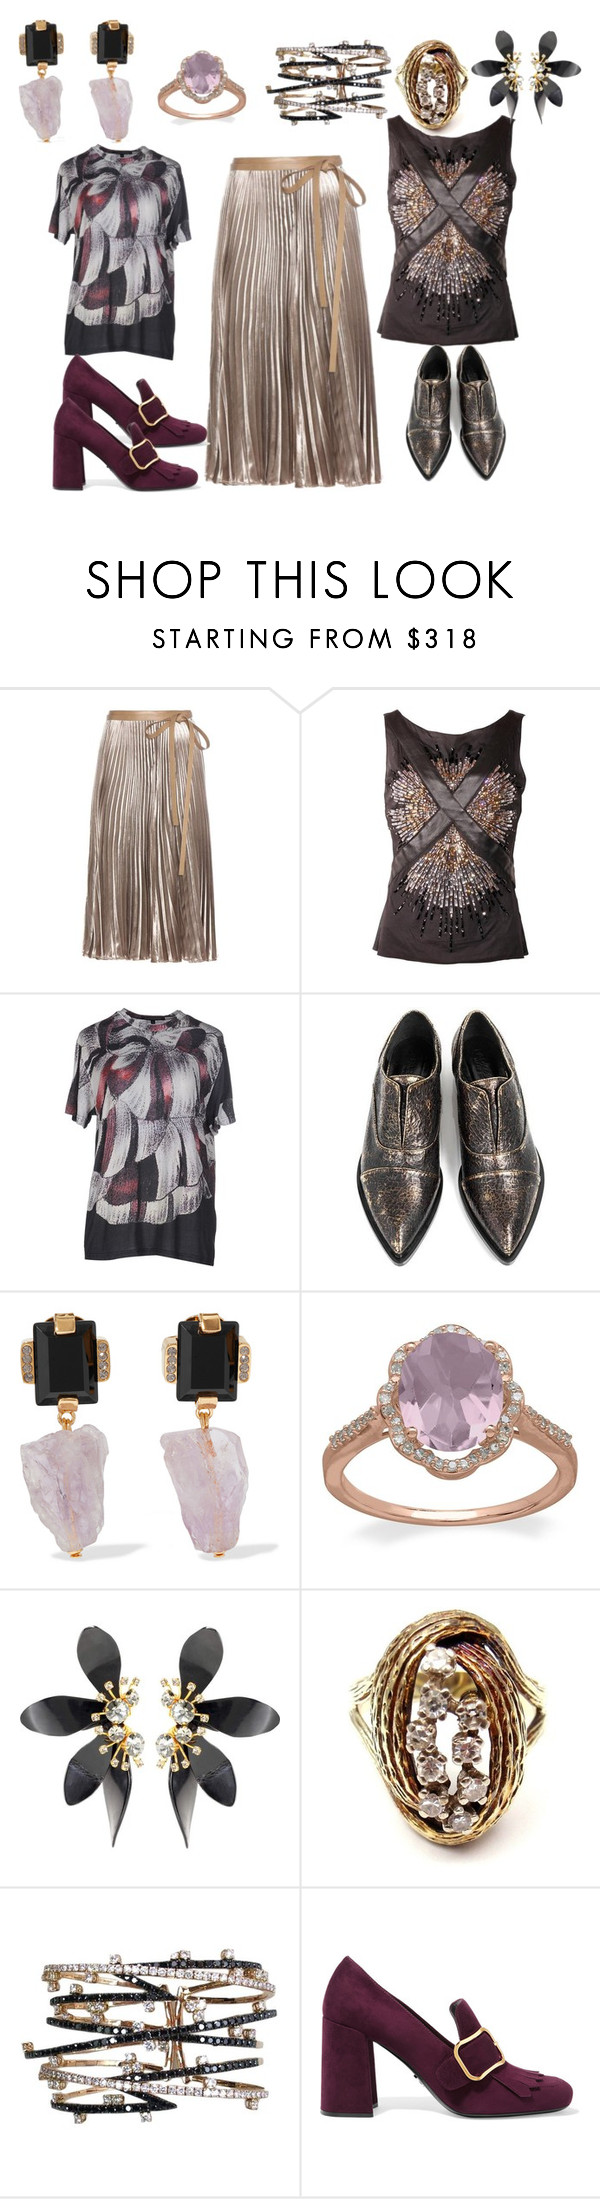 """Dourando"" by rosania-gsrq on Polyvore featuring moda, Valentino, Christopher Kane, Marni, Lord & Taylor e Prada"